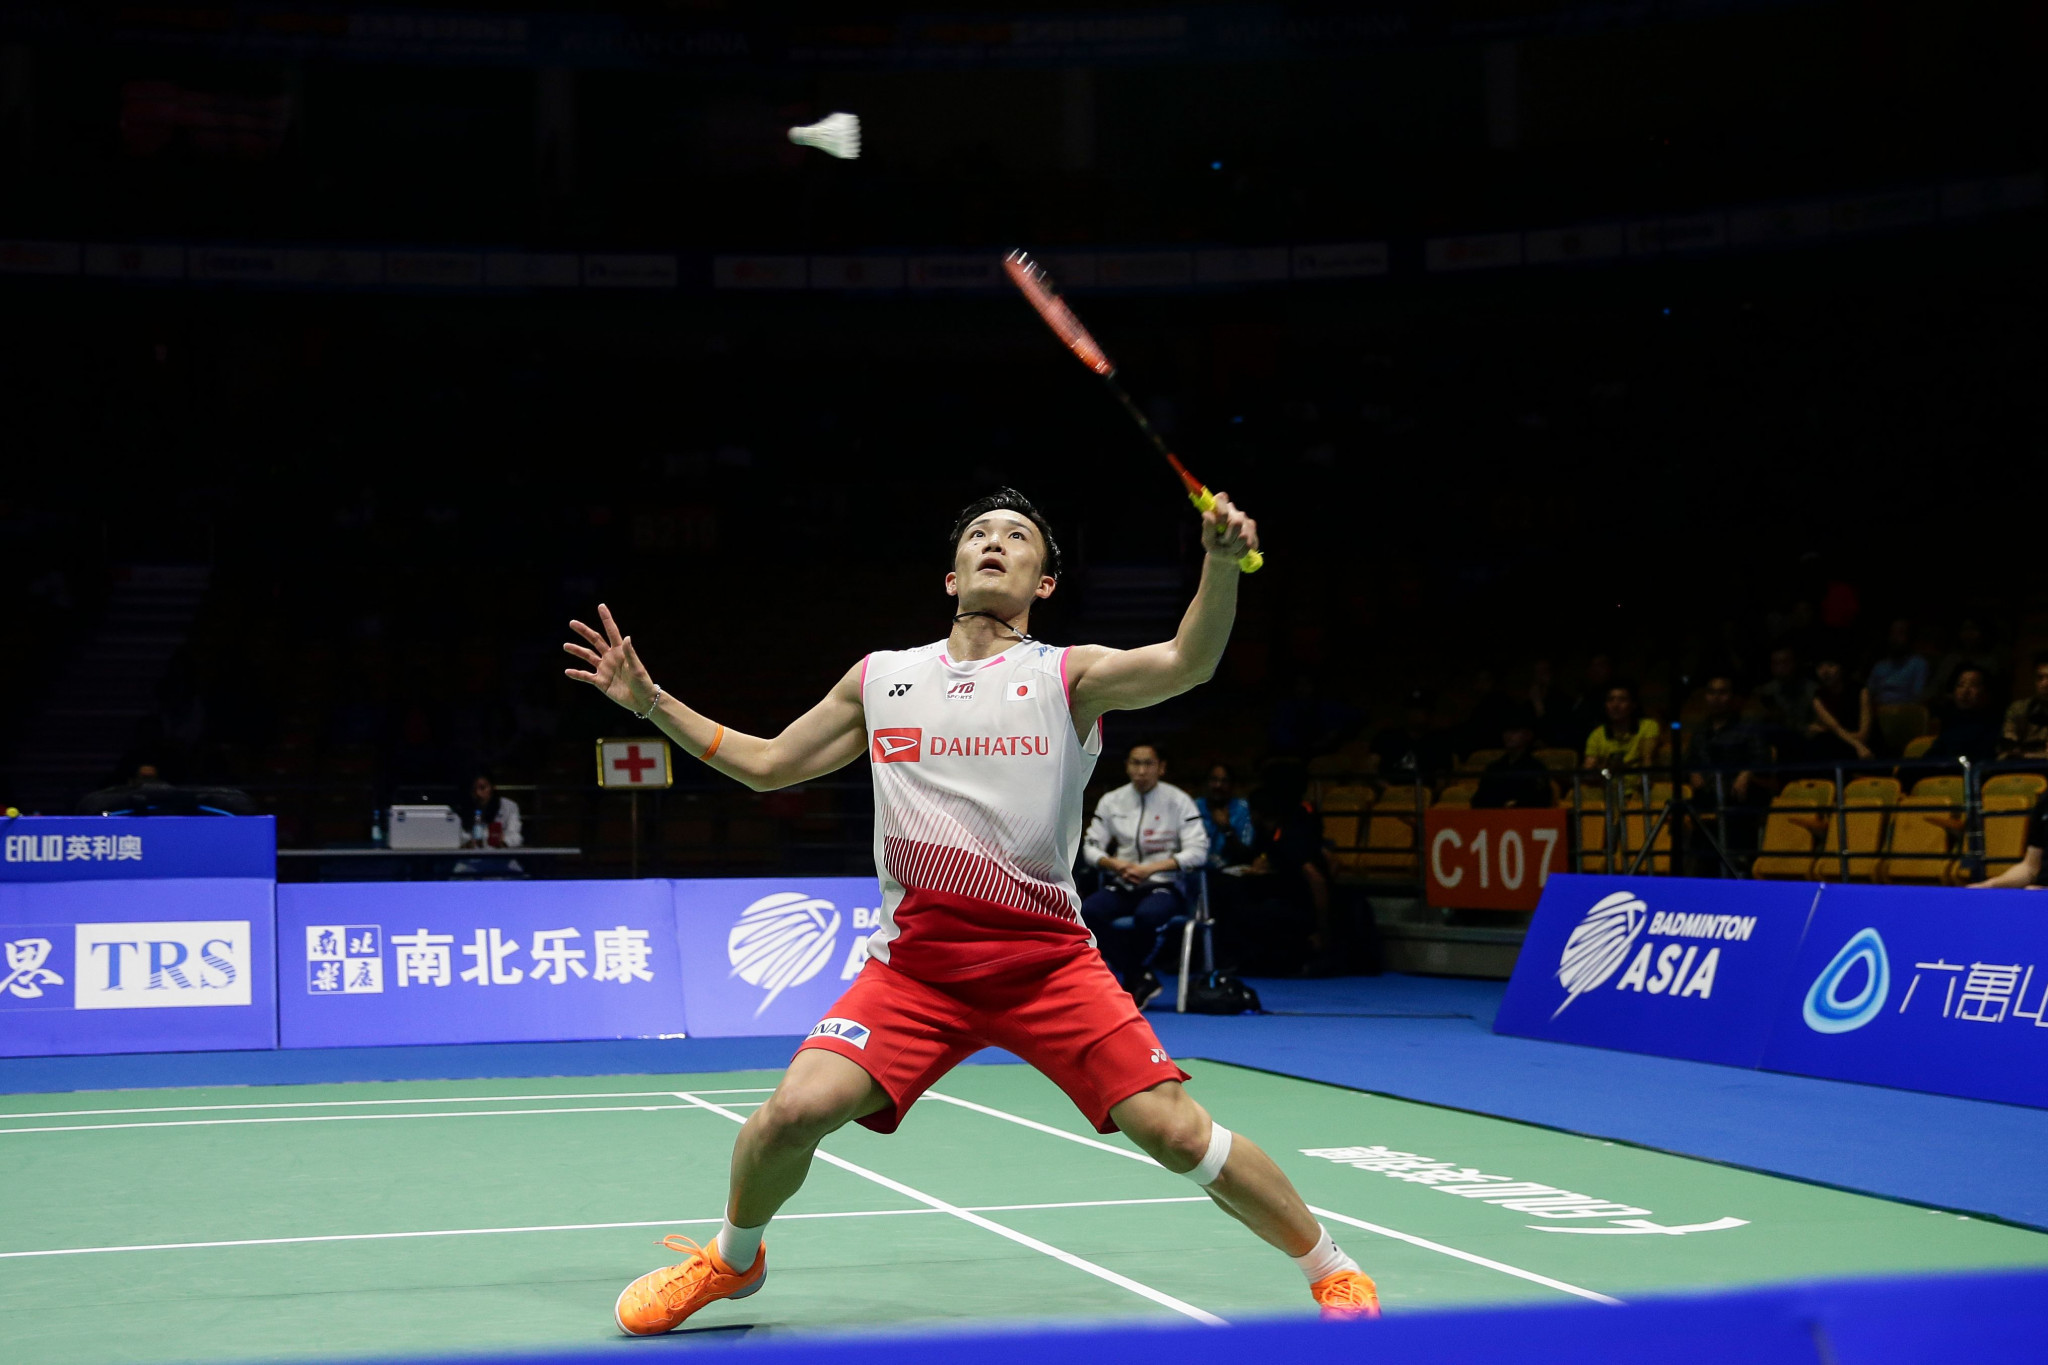 World champion Kento Momota retained his men's singles title in Wuhan ©Getty Images